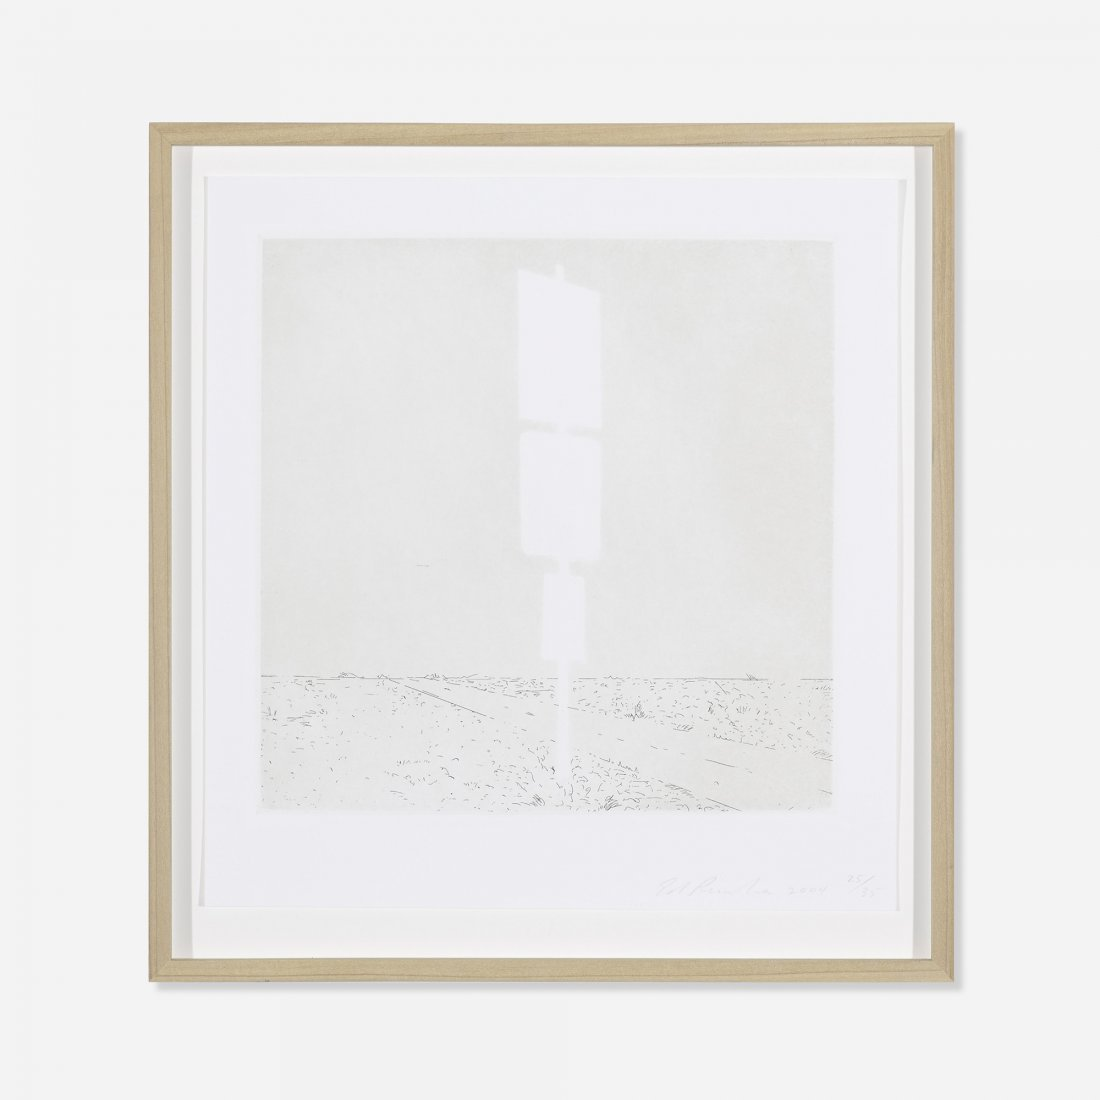 Edward Ruscha untitled (from Blank Signs)